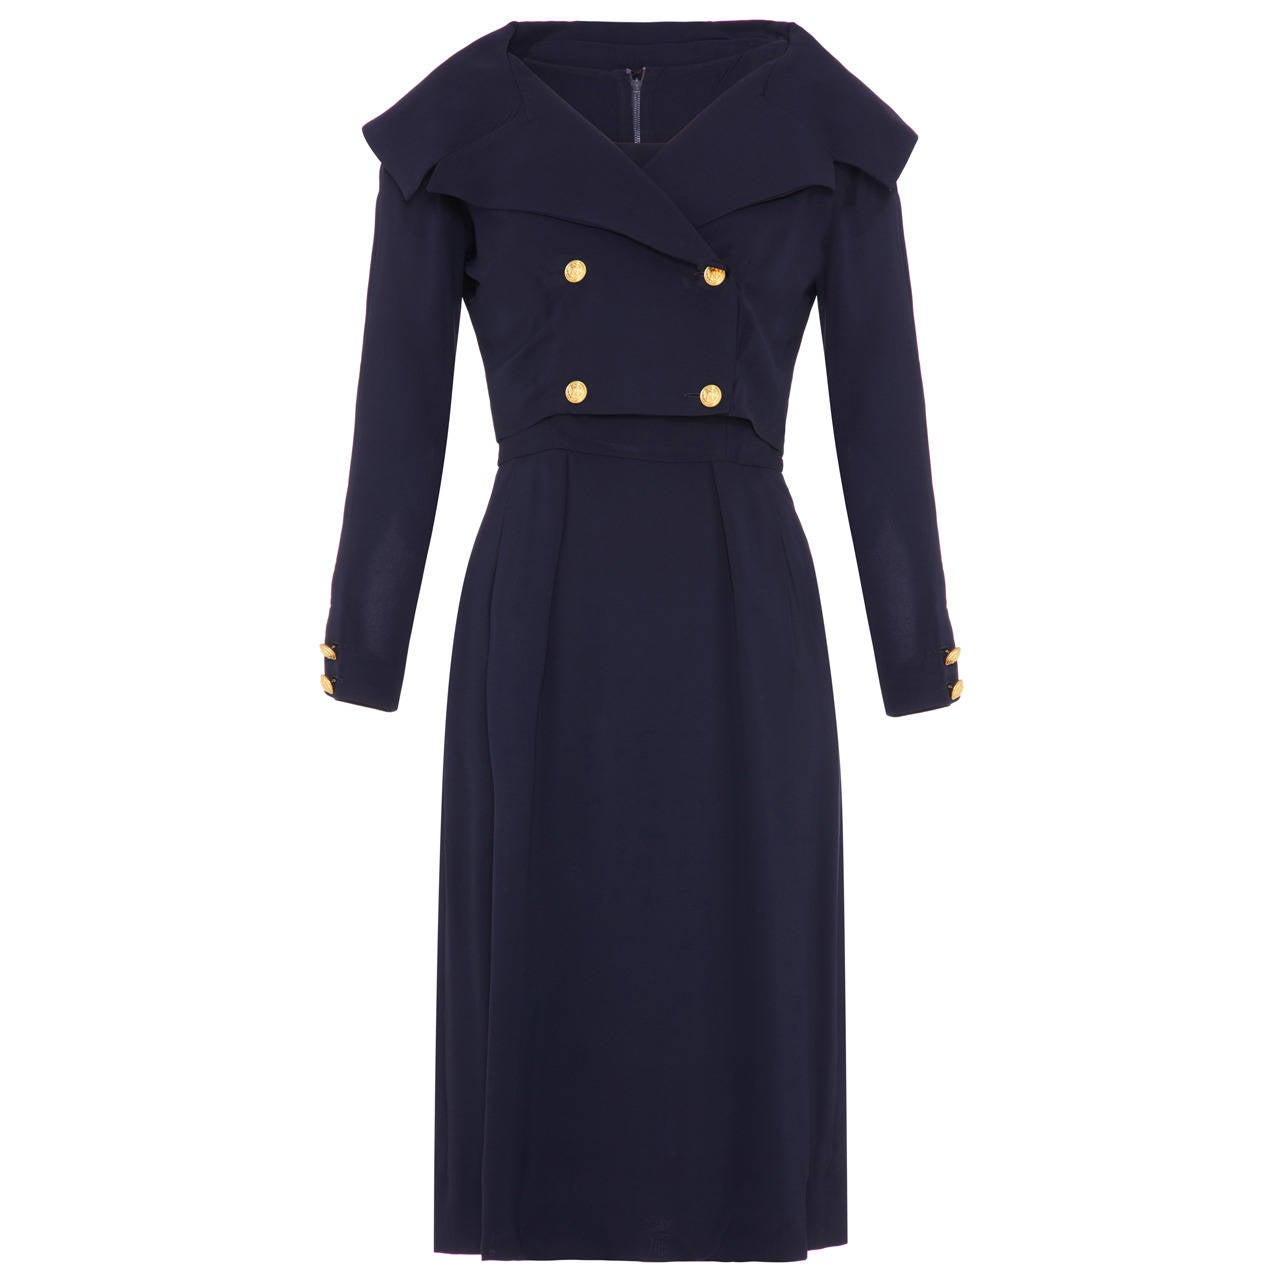 1960s Mr Mort Navy Dress and Jacket Suit For Sale at 1stdibs